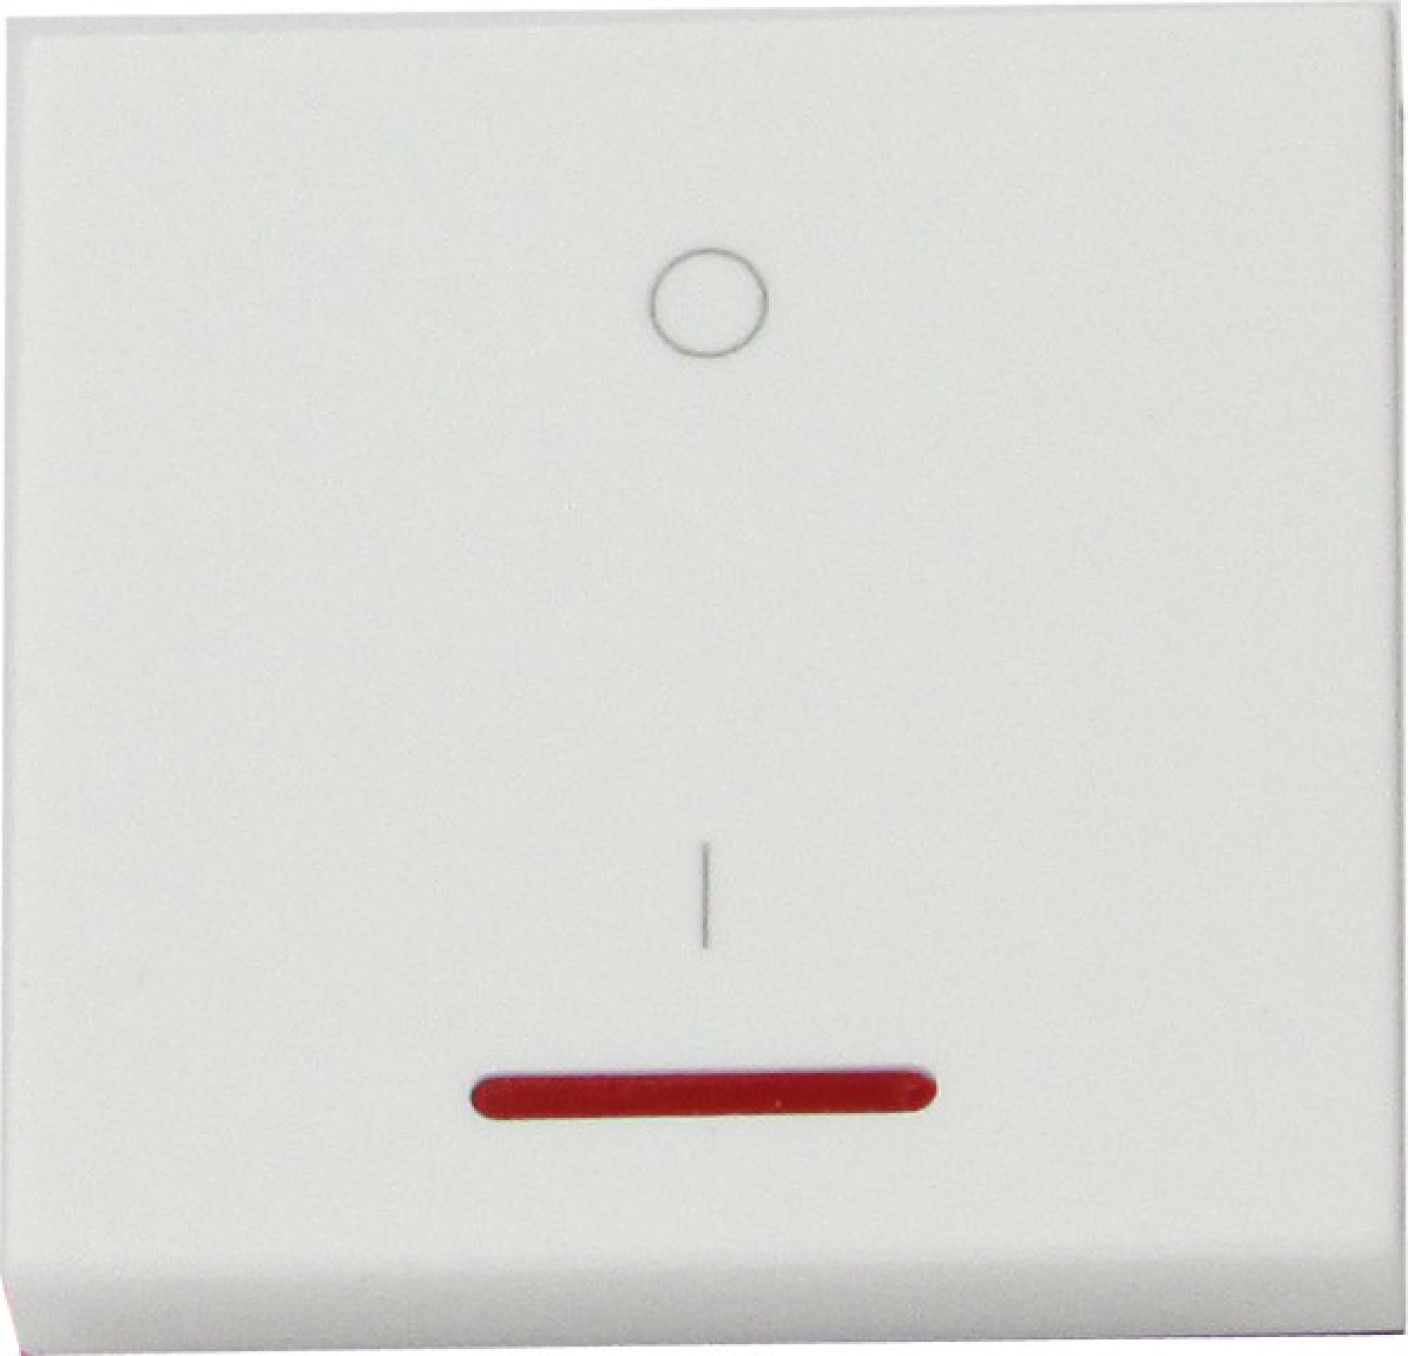 Great White 25 One Way Electrical Switch Price in India - Buy Great ...